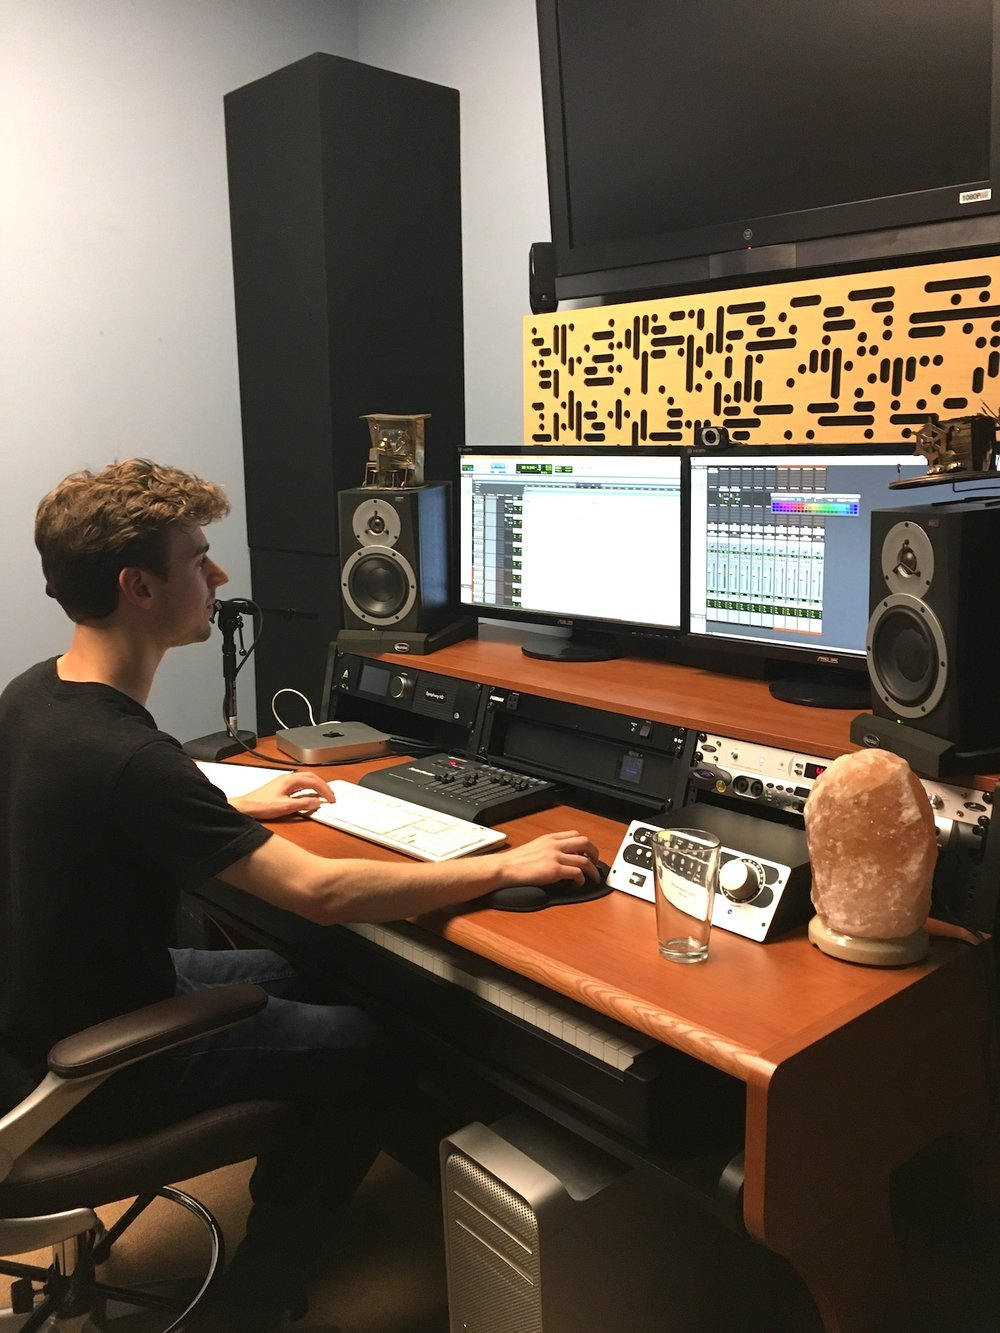 Sam McCormick at work at Amper Music in Santa Monica, California.